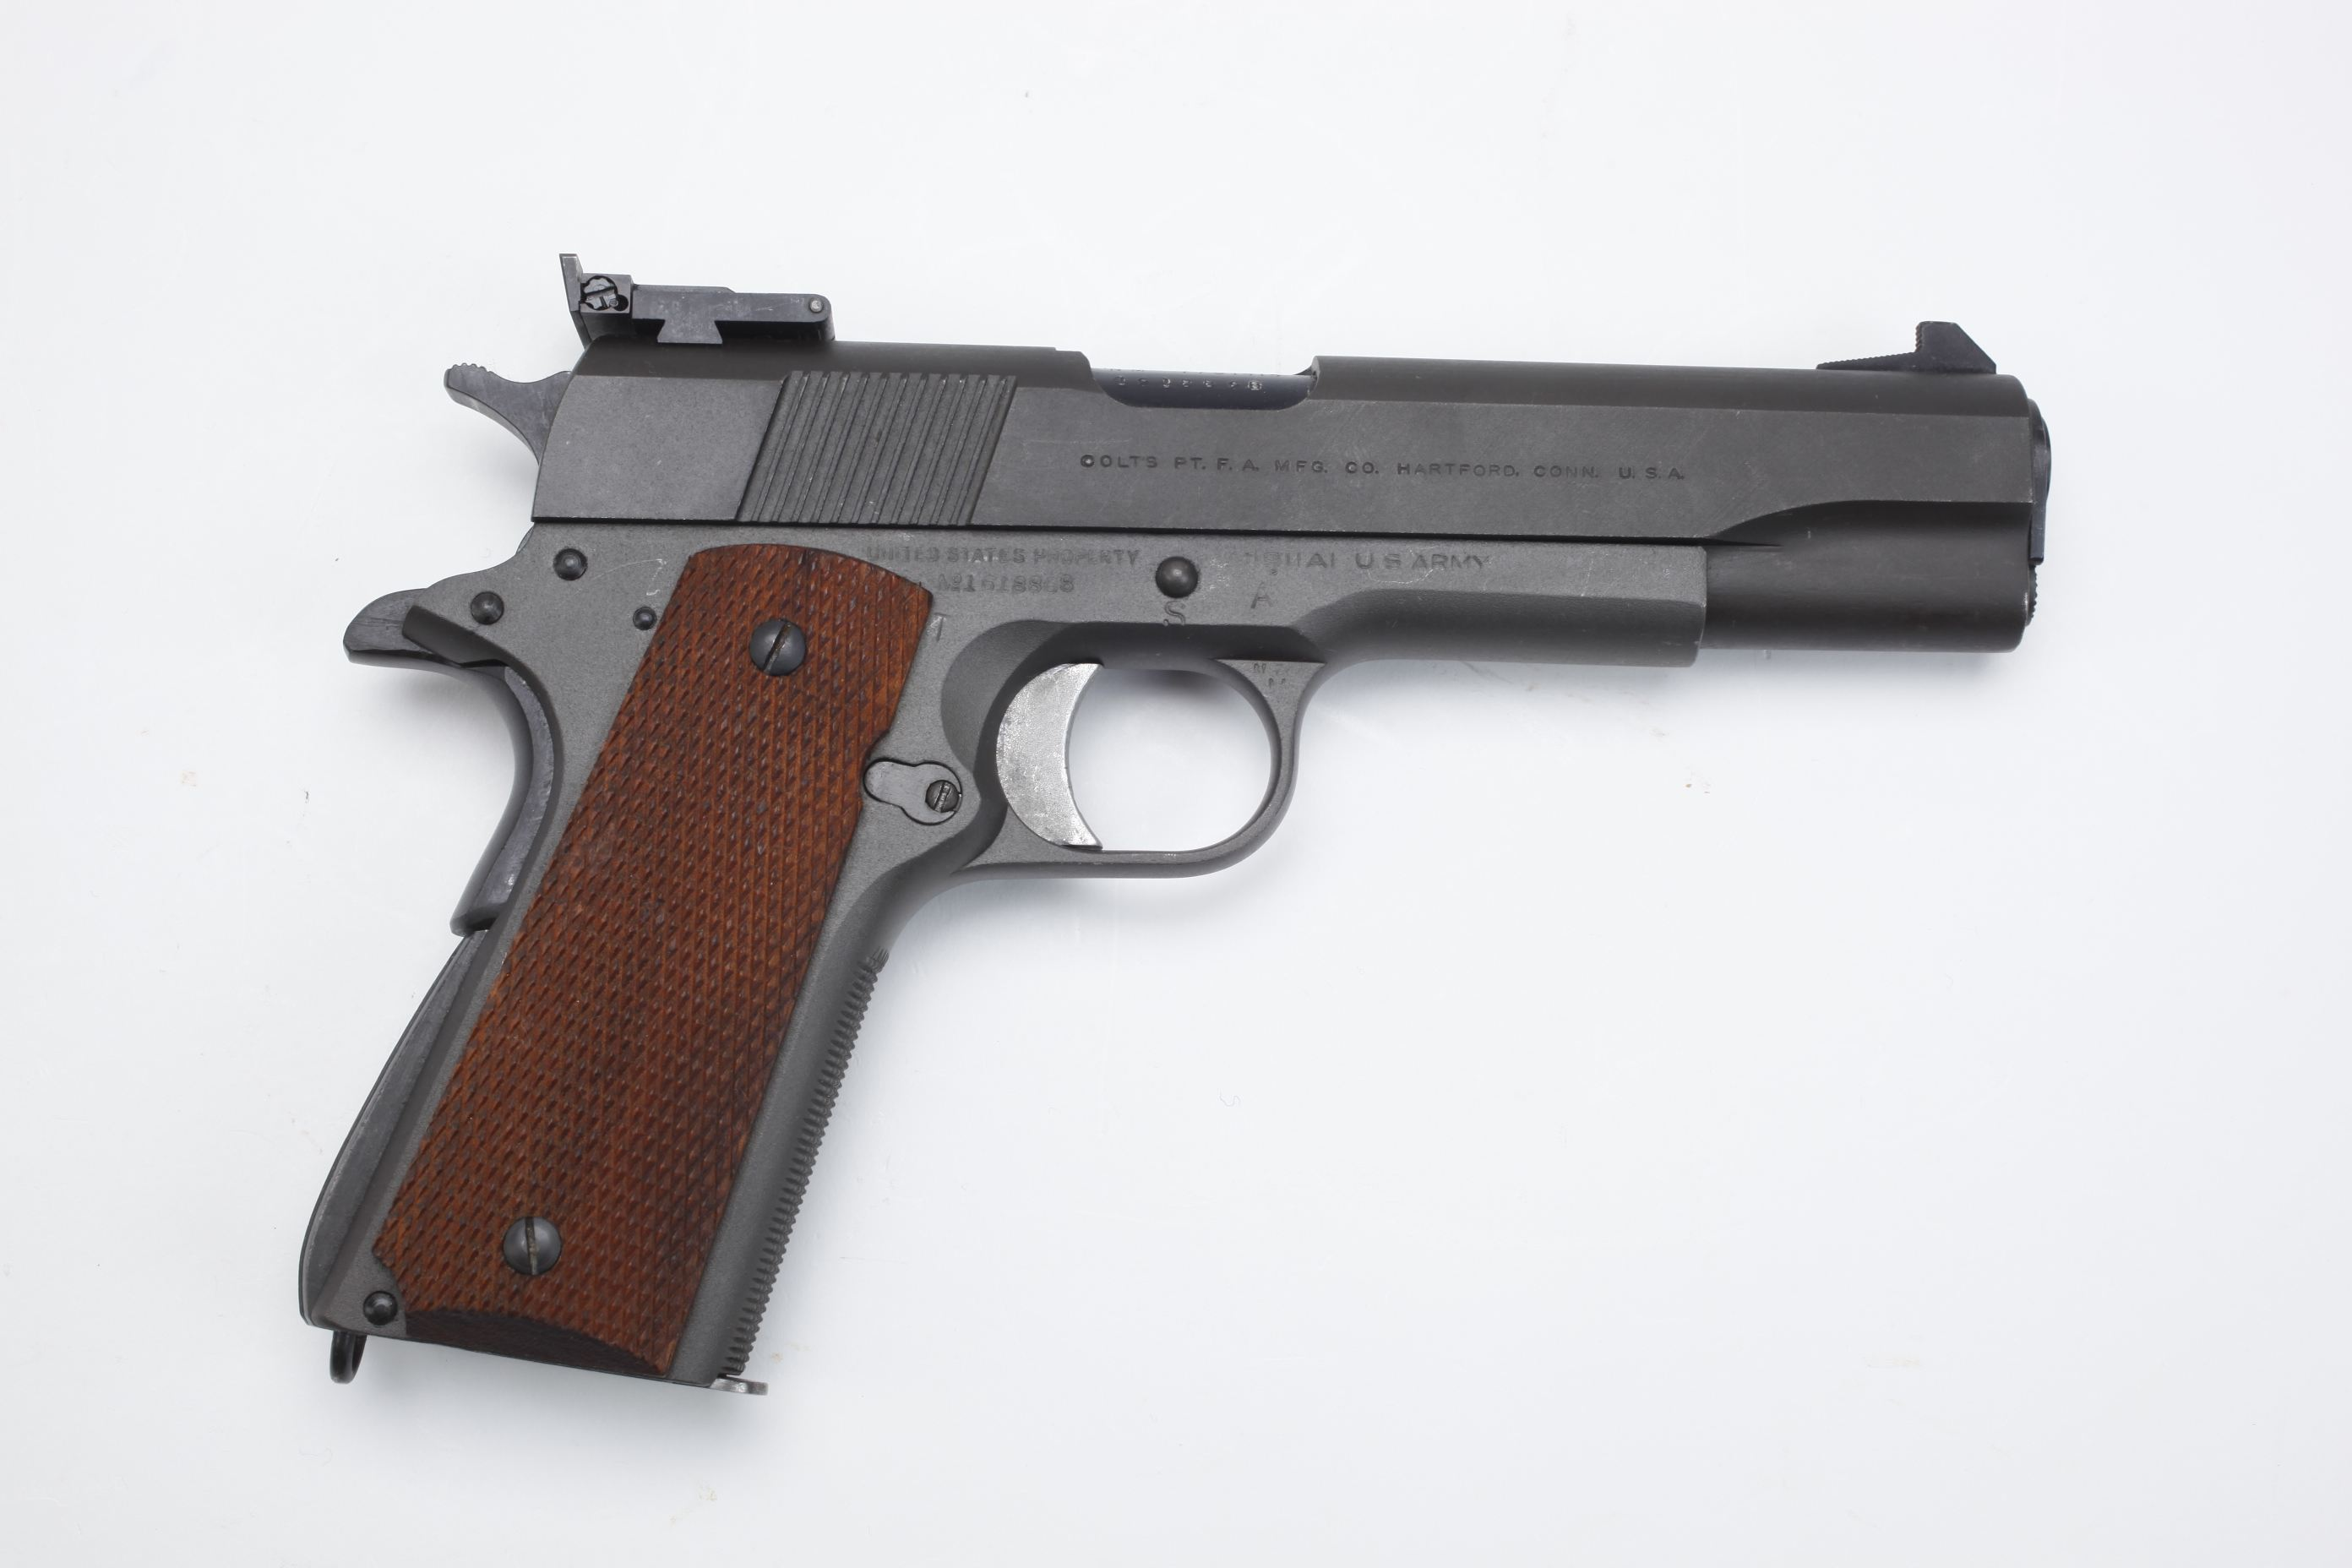 U.S. Colt Model 1911A1 National Match Semi Automatic Pistol